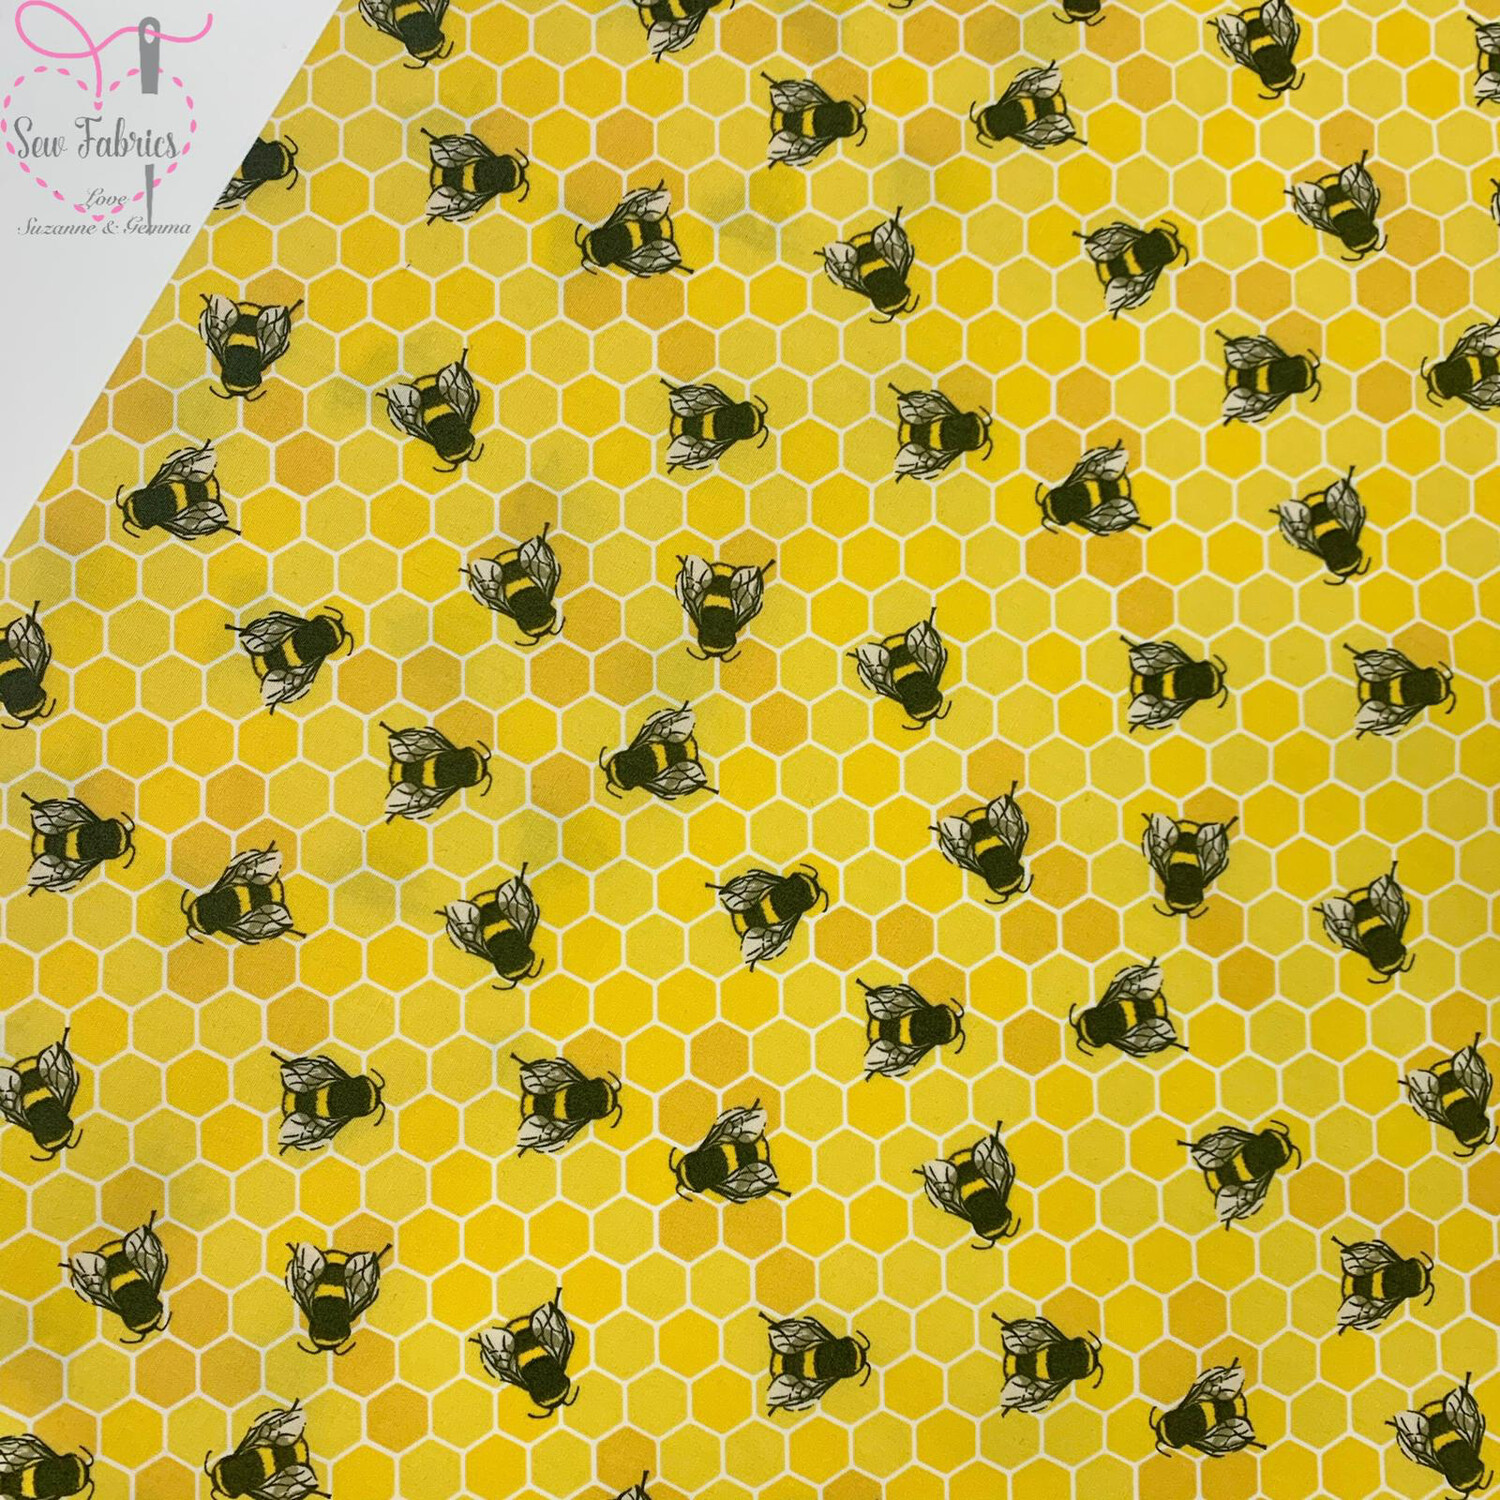 Rose and Hubble Honey Bee Print Fabric 100% Cotton Poplin